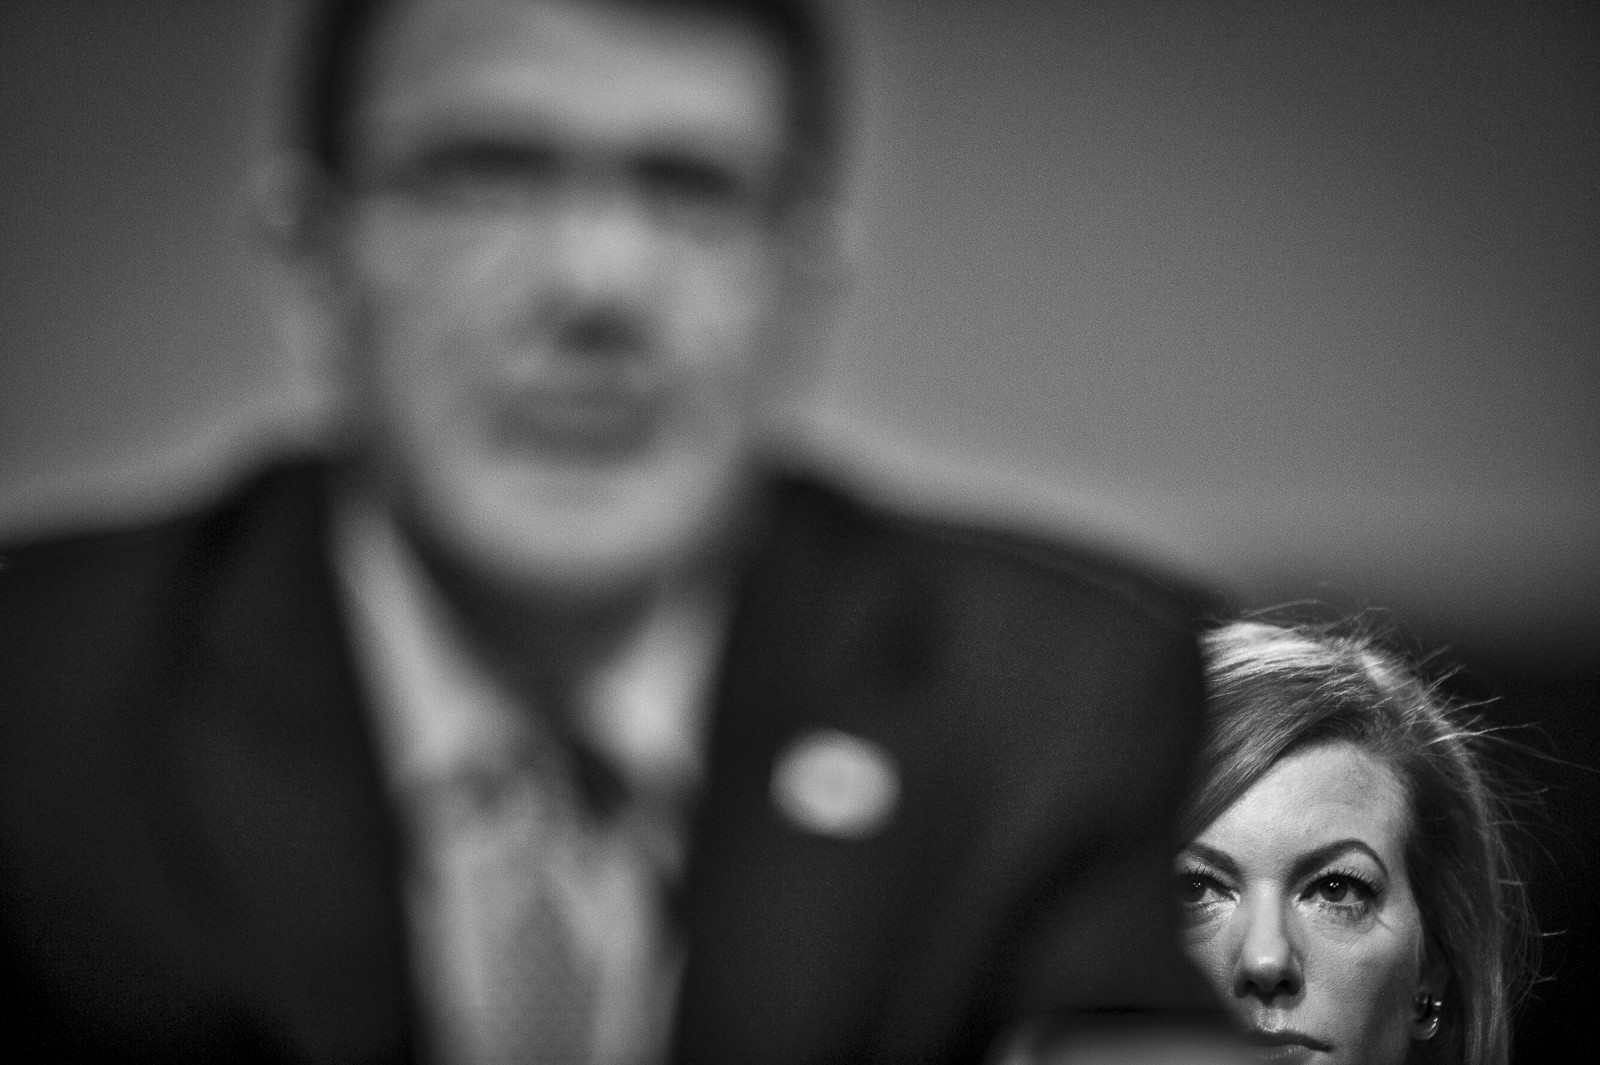 Stephanie Carter, wife of former Deputy Secretary of Defense, Ashton Carter, looks on as he testifies before the Senate Armed Services Committee on Capitol Hill during a hearing on his nomination to be Defense Secretary on February 4, 2015. Carter is expected to be approved by the Senate, but still underwent a grilling from lawmakers President Obama's national security policies.